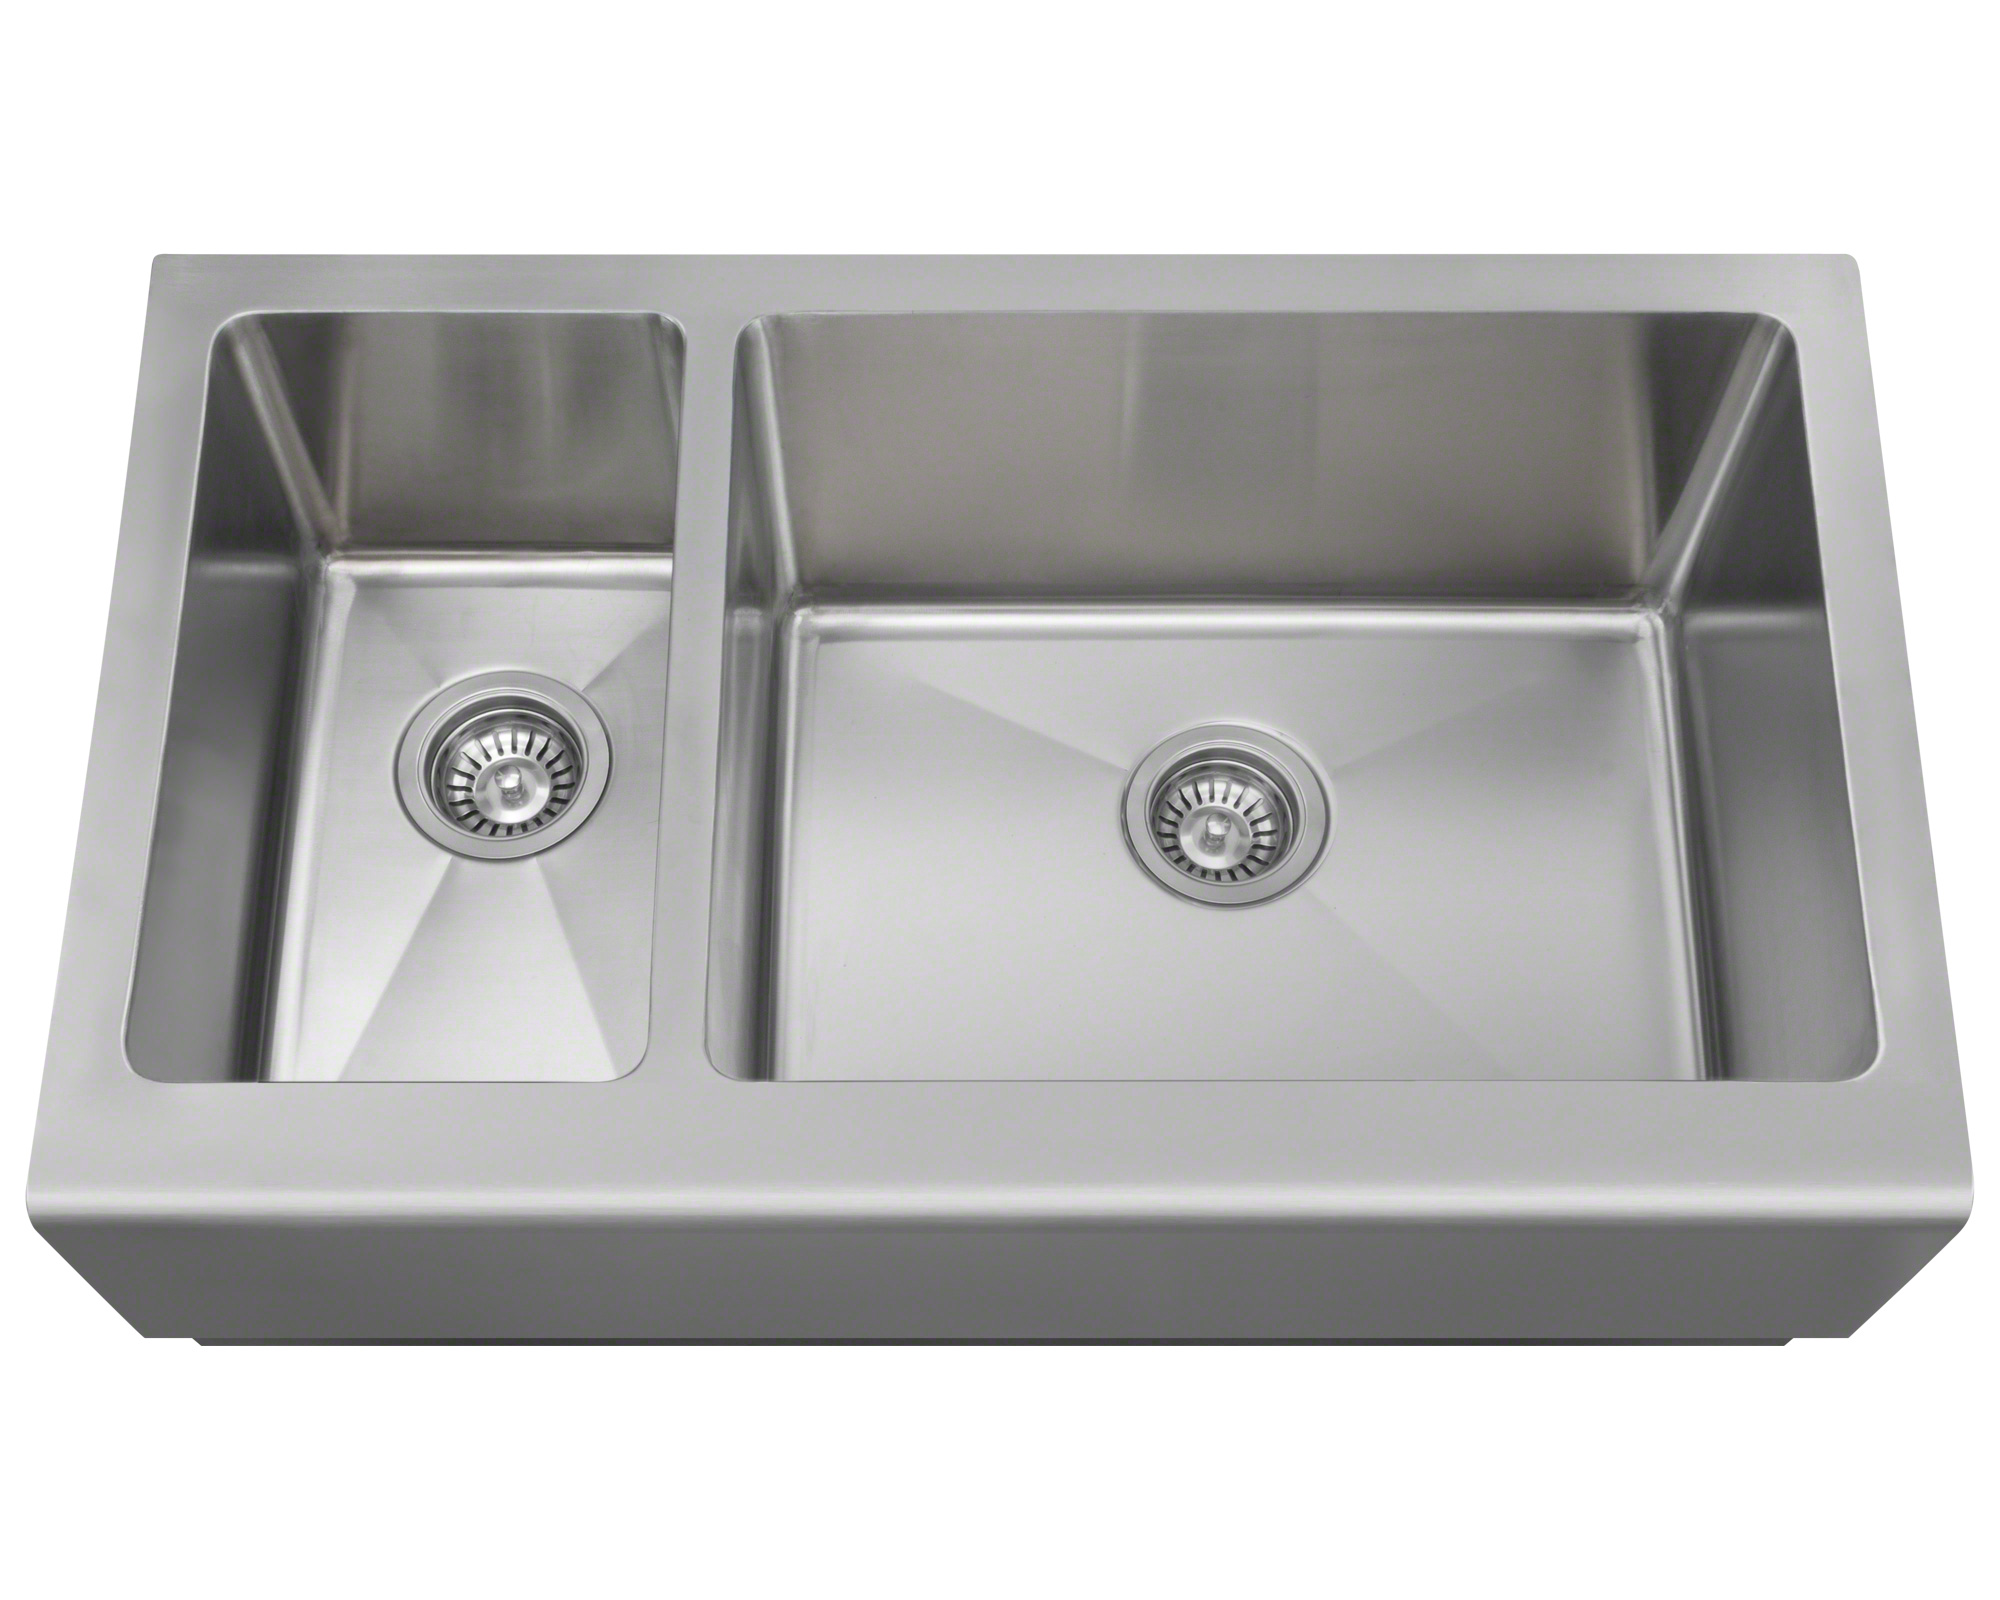 Polaris PR704 Offset Stainless Steel Apron Sink